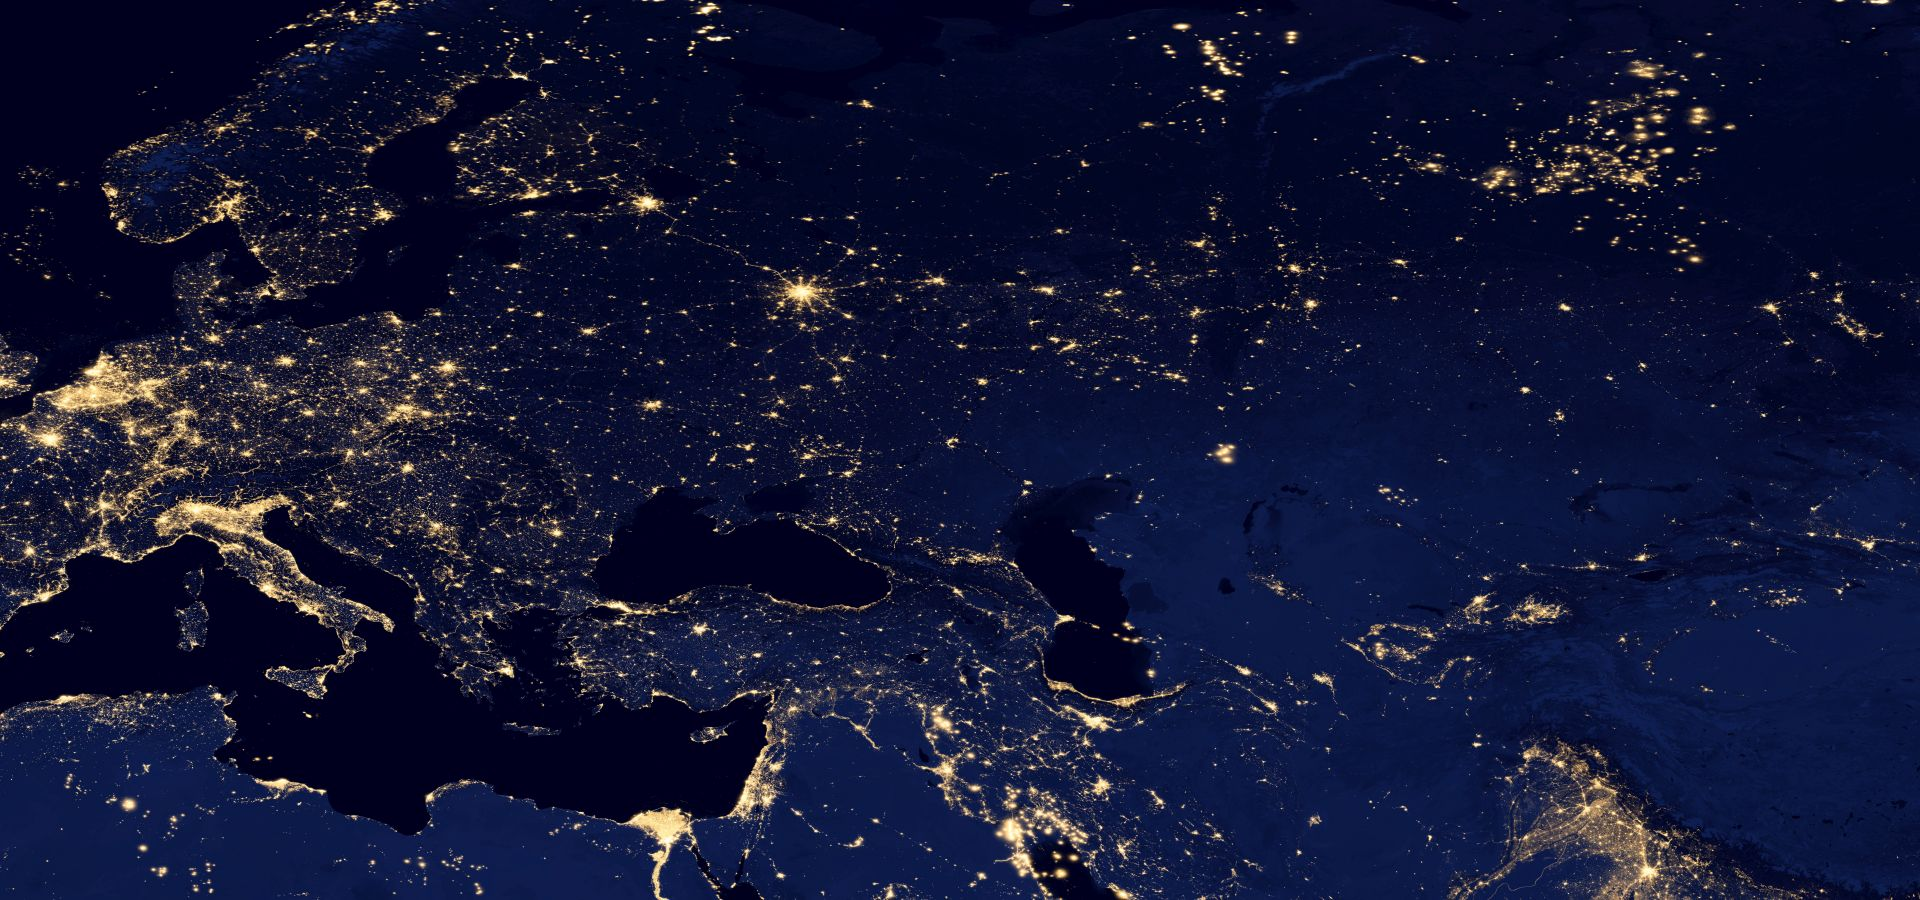 lights of Europe, northern africa, asia by night